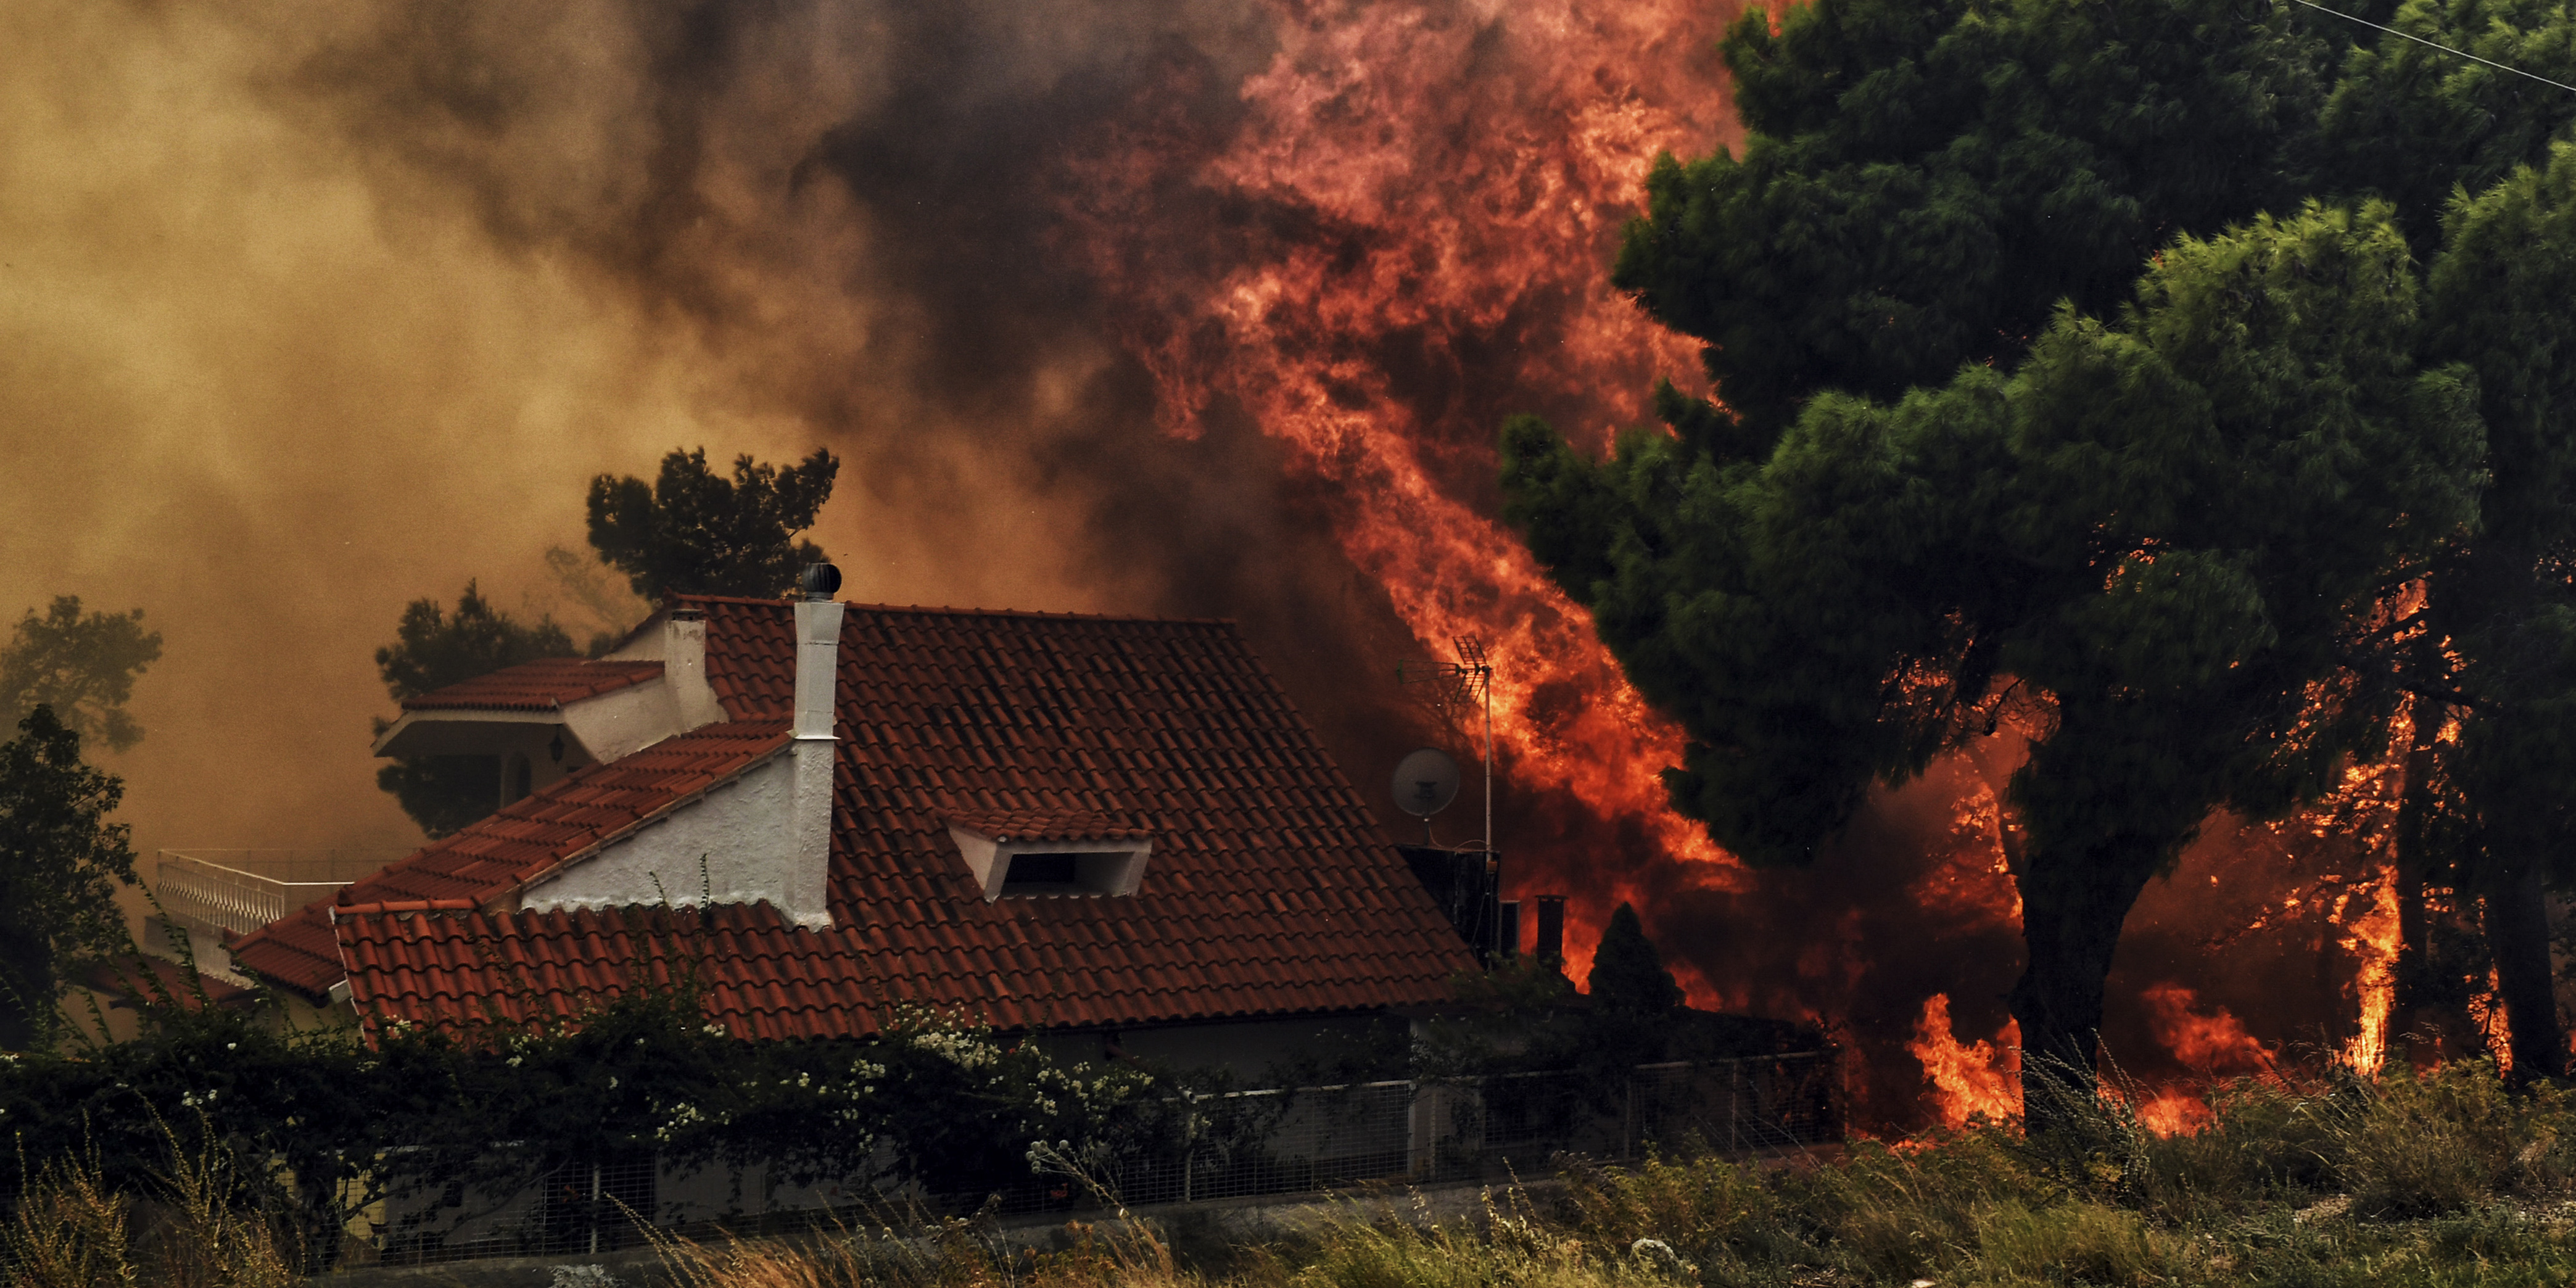 "A house is threatened by a huge blaze during a wildfire in Kineta, near Athens, on July 23, 2018. More than 300 firefighters, five aircraft and two helicopters have been mobilised to tackle the ""extremely difficult"" situation due to strong gusts of wind, Athens fire chief Achille Tzouvaras said. / AFP PHOTO / VALERIE GACHE"